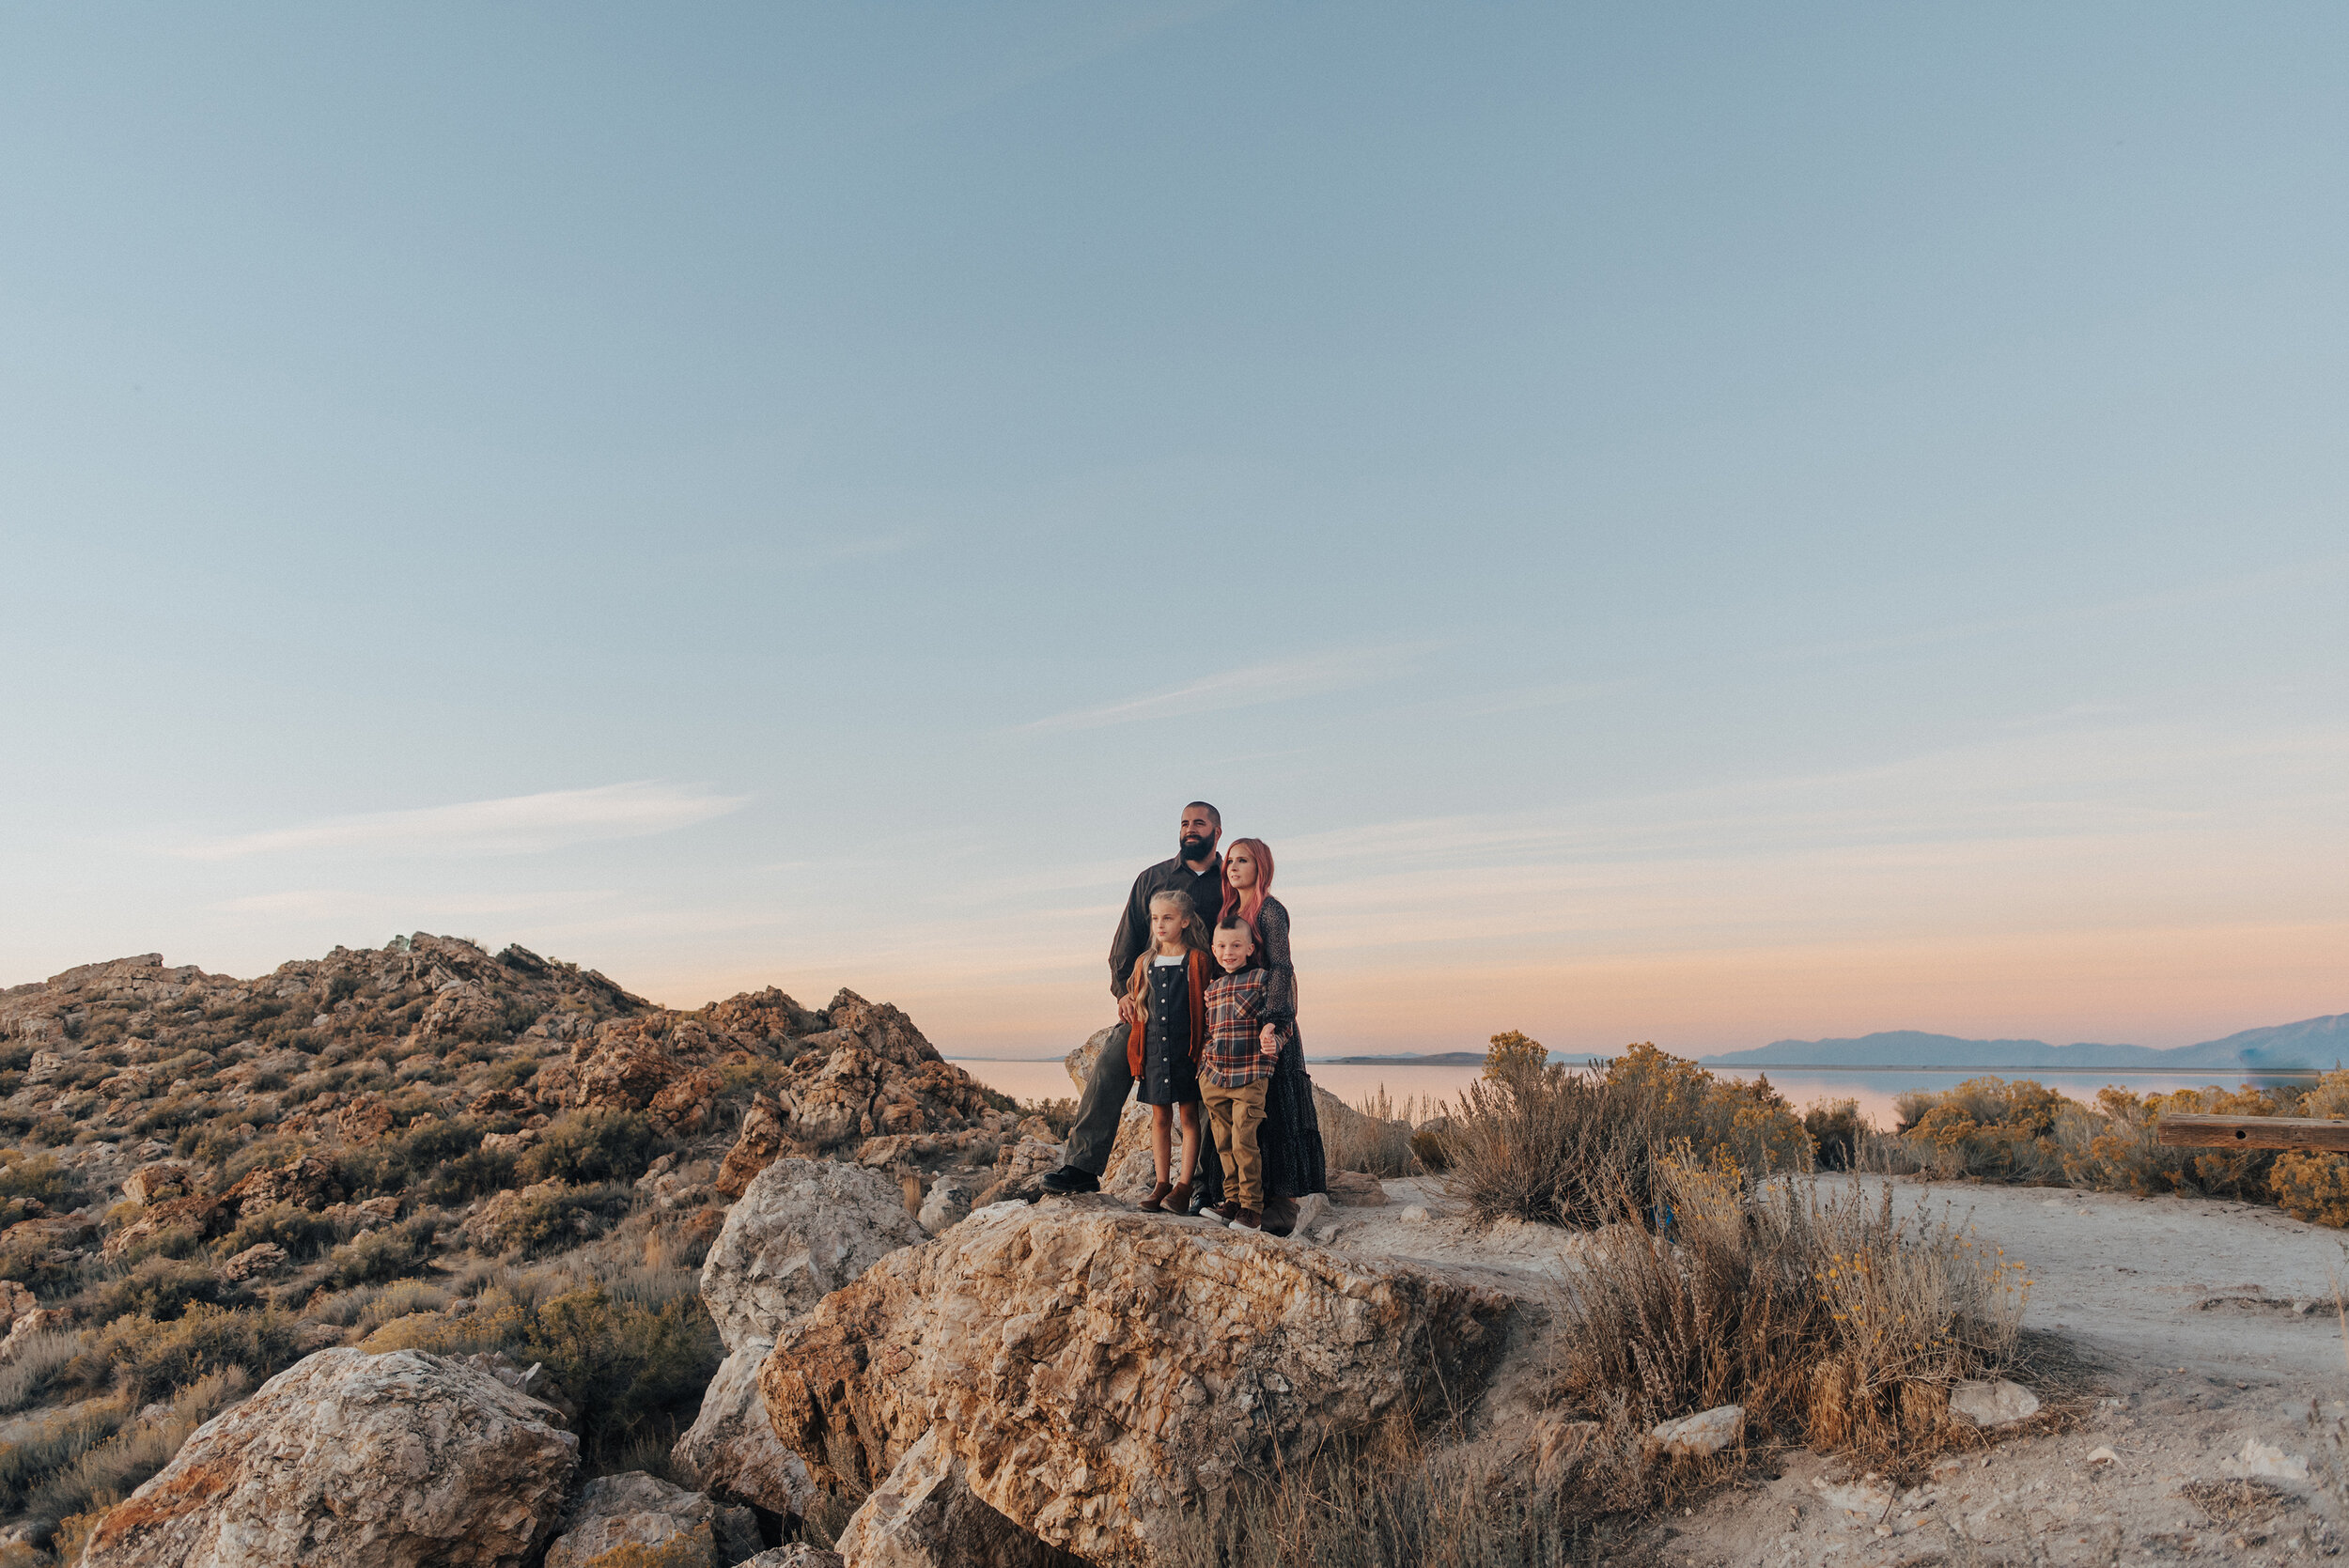 A stunning family stares into the distance in a beautiful sunset family photo shoot in Syracuse Utah's Antelope Island. Family pose goals young family photo shoot inspiration family attire inspiration ideas and goals  pink hair goals professional Utah photographer Kristi Alyse Photography standing on rocks family pose inspiration #familypictures #utahphotographer #antelopeisland #outfitinspo #familypics #familyphotographer #pinkhair #saltlakecityphotog #slcfamilypictures